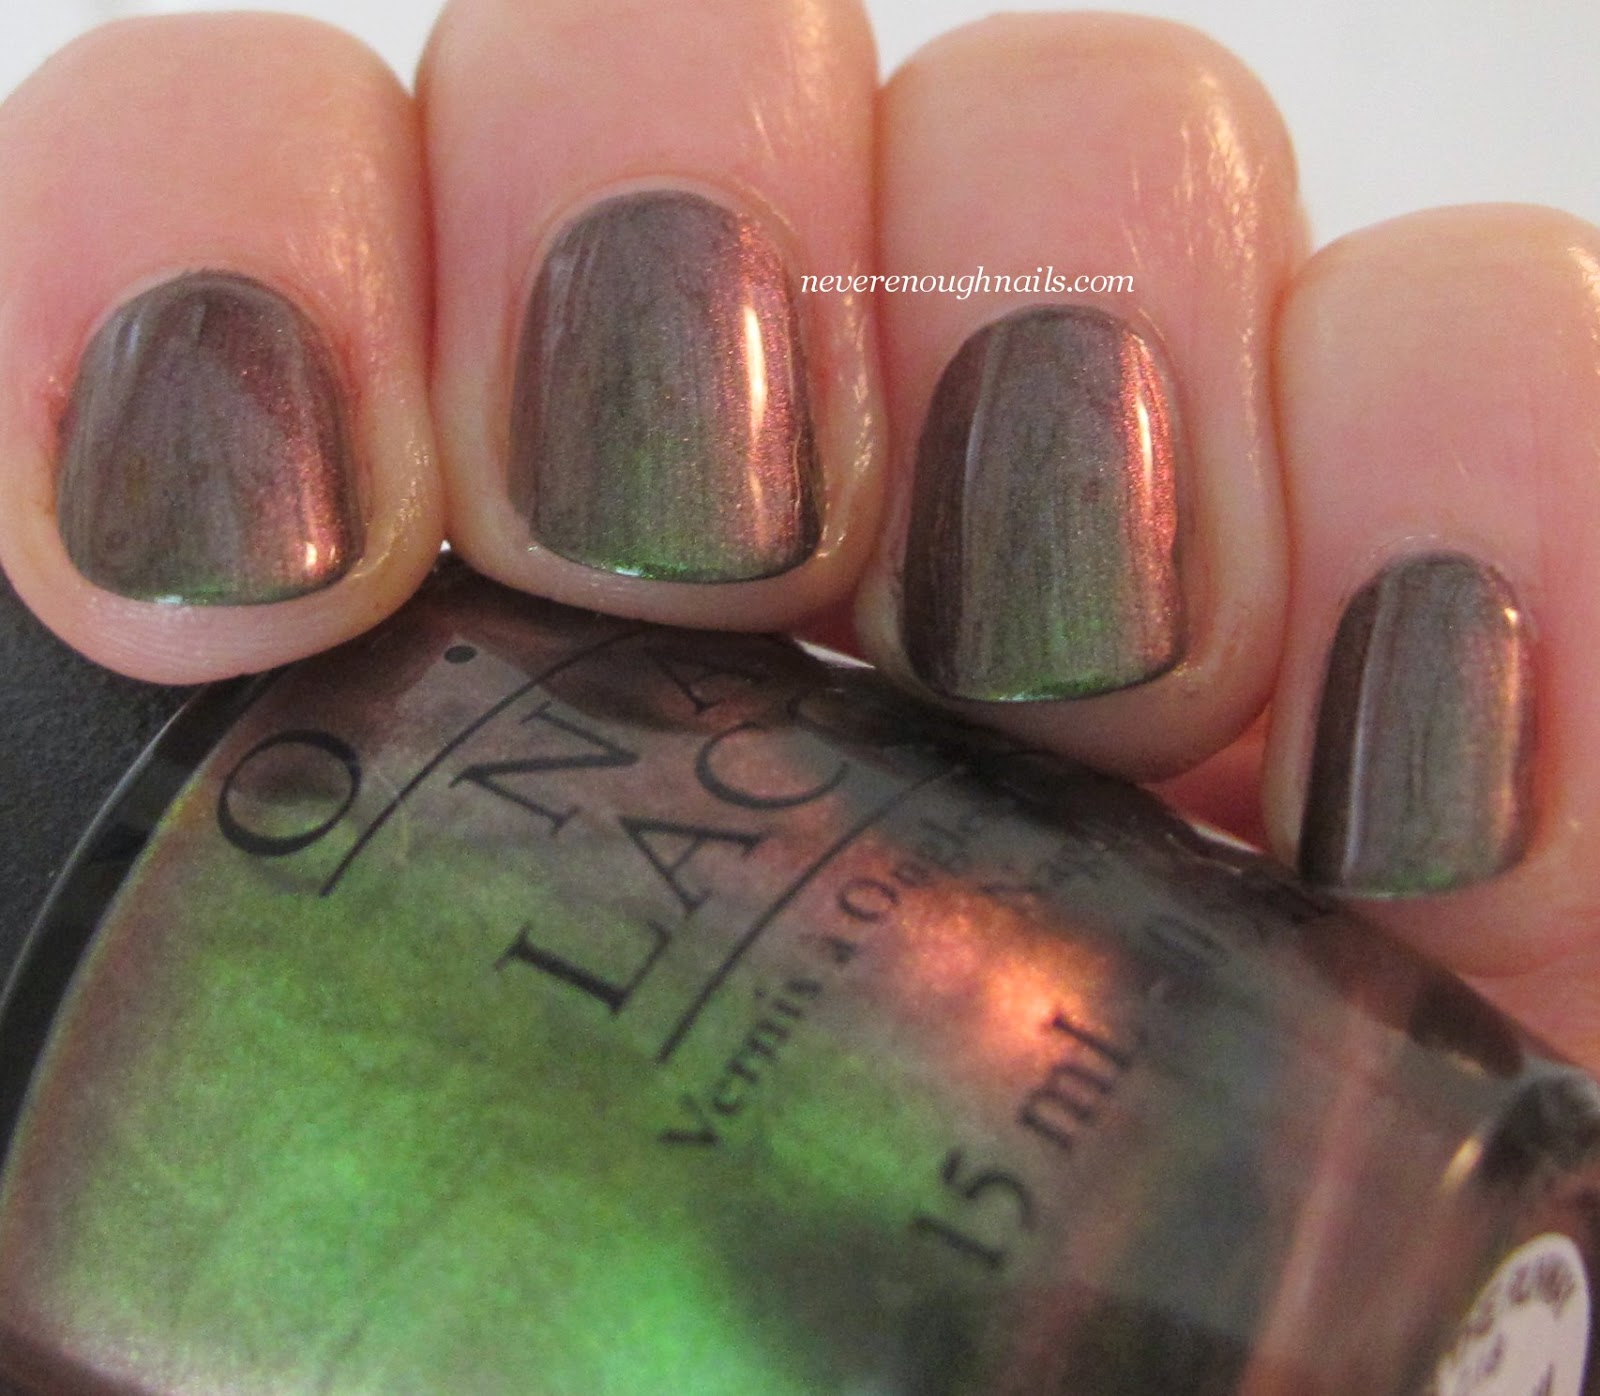 Never Enough Nails: Coca-Cola by OPI Swatches, Part 2!